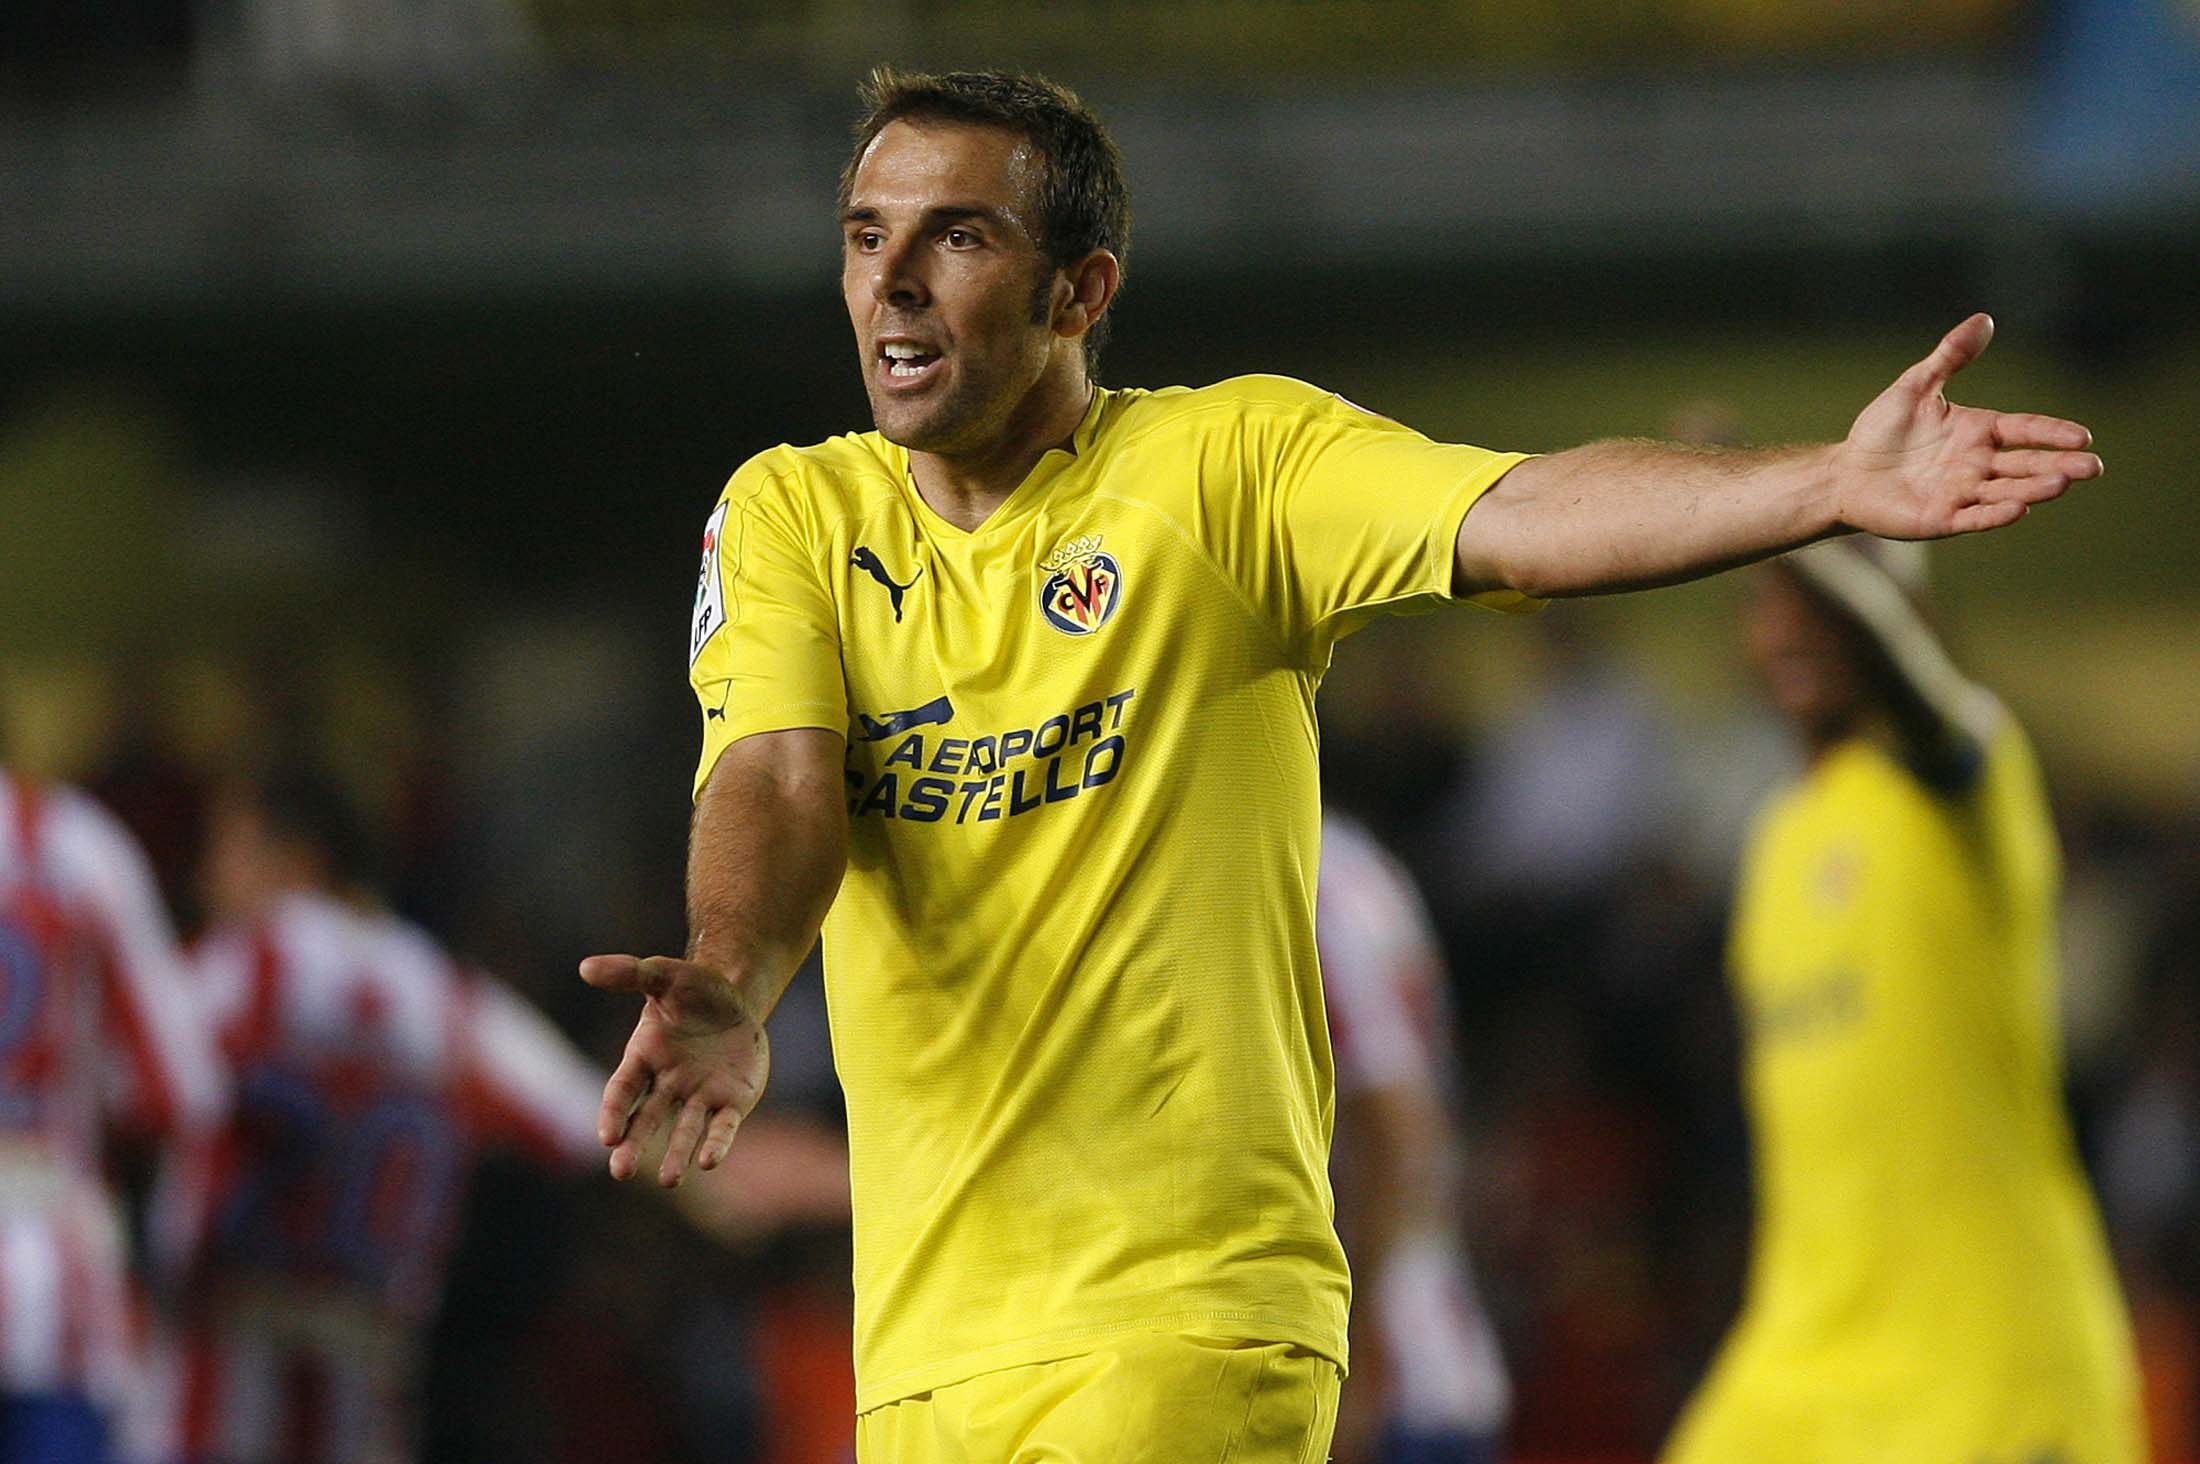 Villarreal's Carlos Marchena protests during their Spanish first division soccer match against Atletico Madrid at the Madrigal Stadium in Villarreal October 24, 2010. REUTERS/Heino Kalis (SPAIN - Tags: SPORT SOCCER)